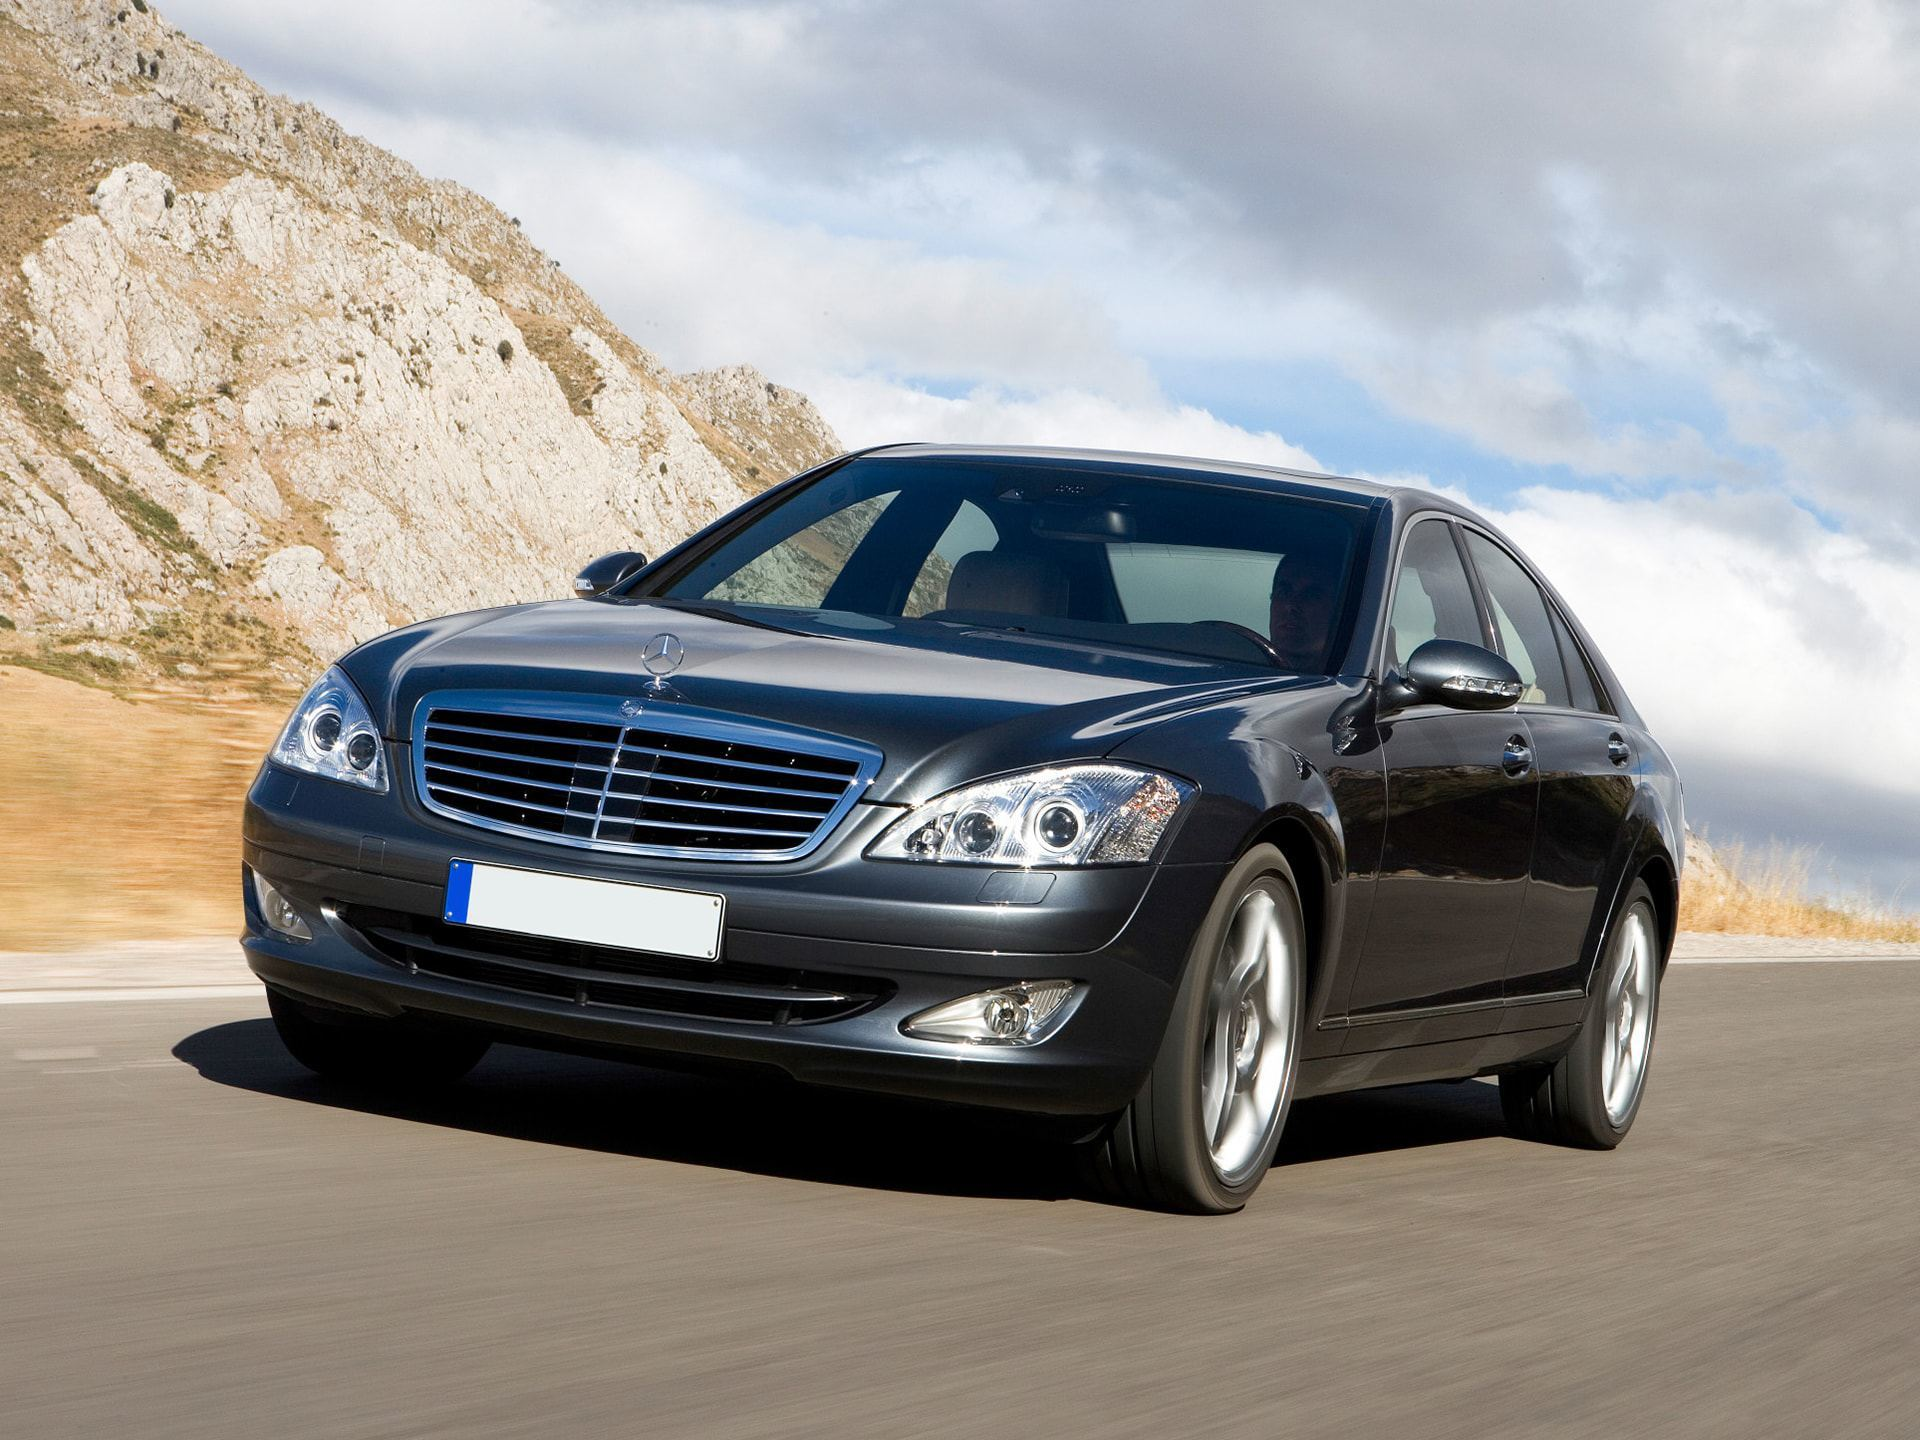 Mercedes benz s class w221 lease toplimo kz for Mercedes benz ml lease